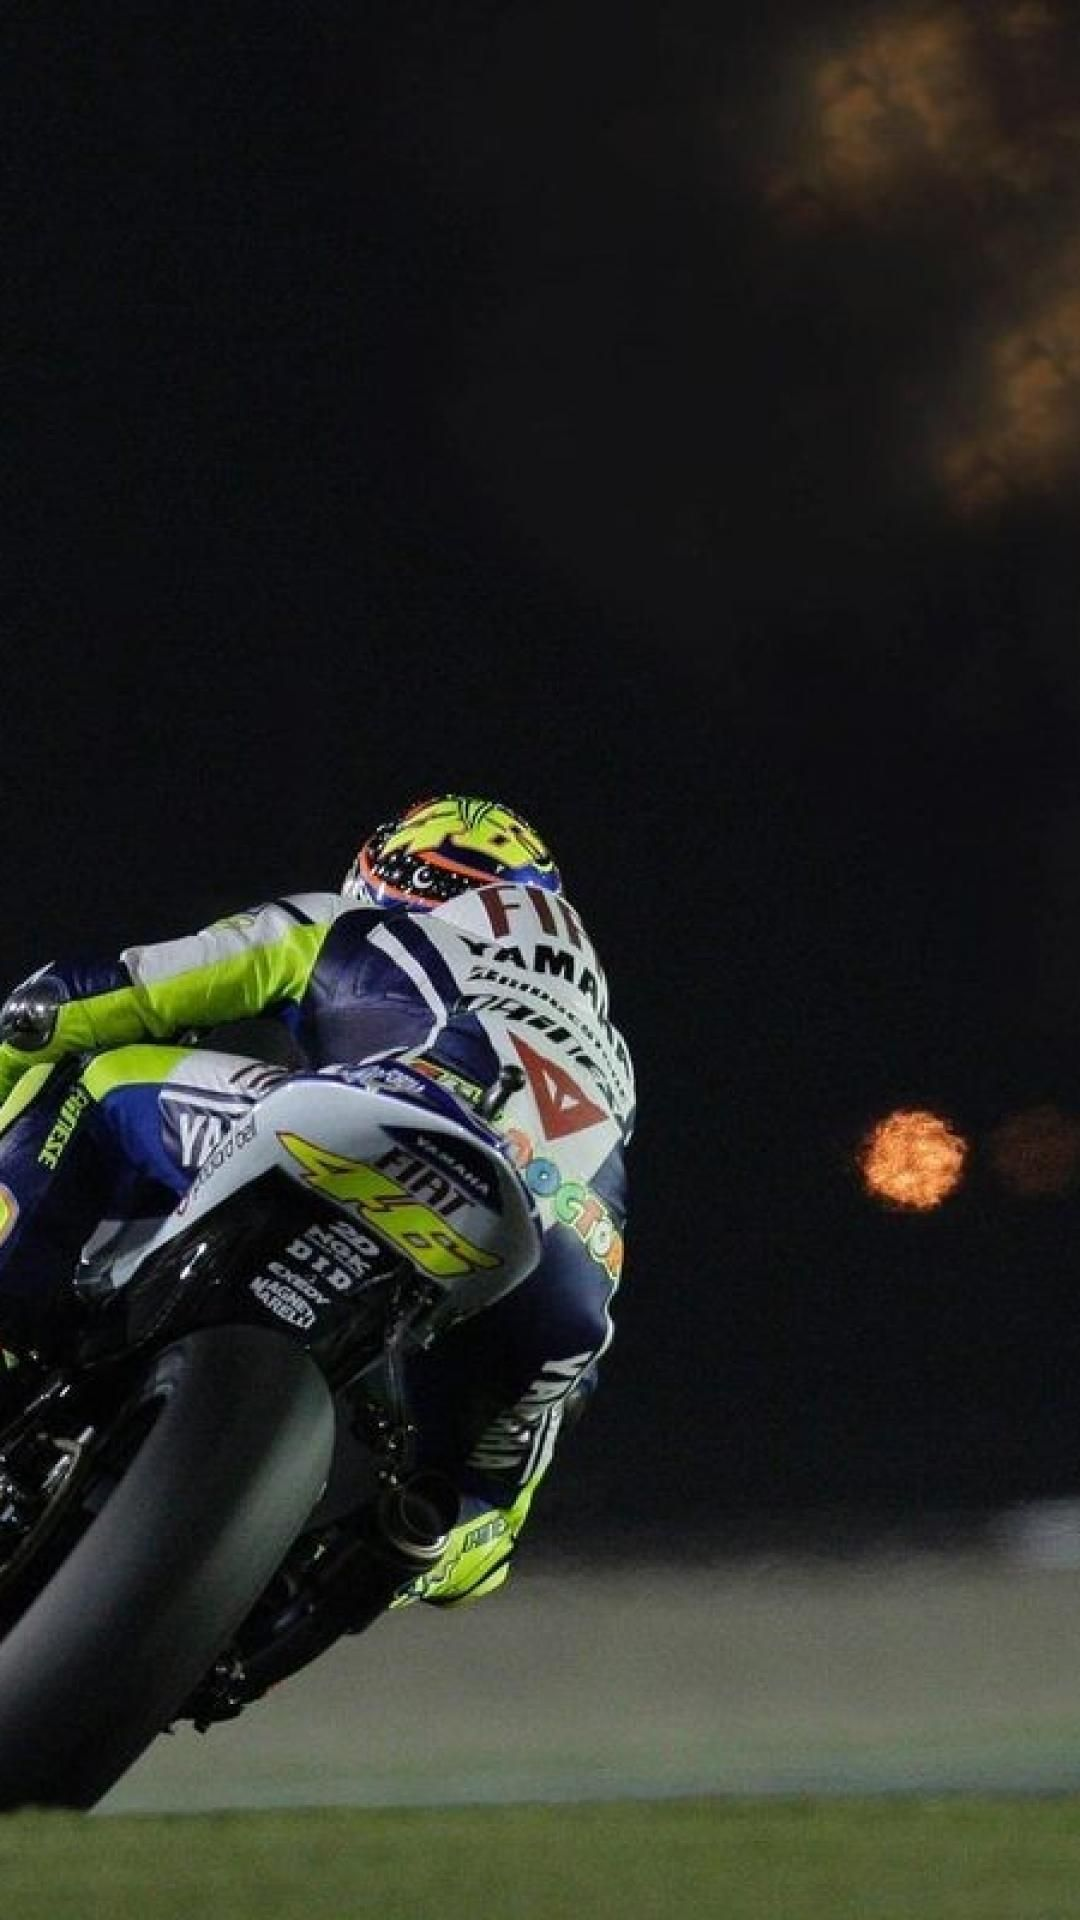 hd-android-wallpapers-bikes-1080x1920-qatar-valentino-rossi-yamaha